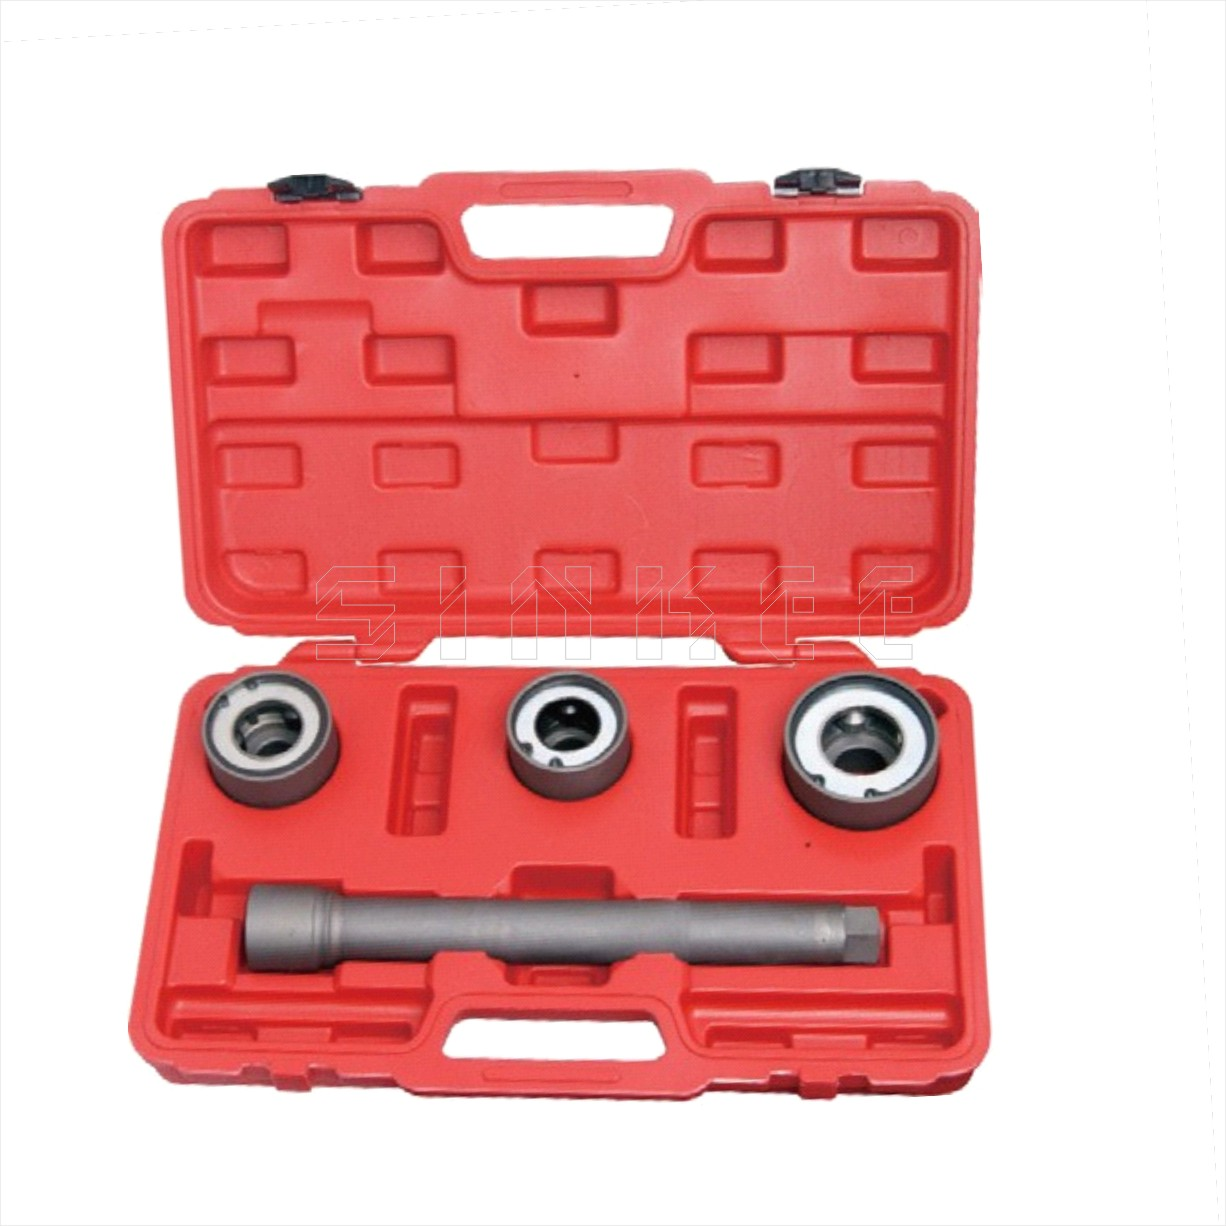 4pc Track Rod End Remover Installer Tool Kit Steering Rack Tie Rod End Axial Joint 30 35mm 35 40mm 40 45mm SK1048